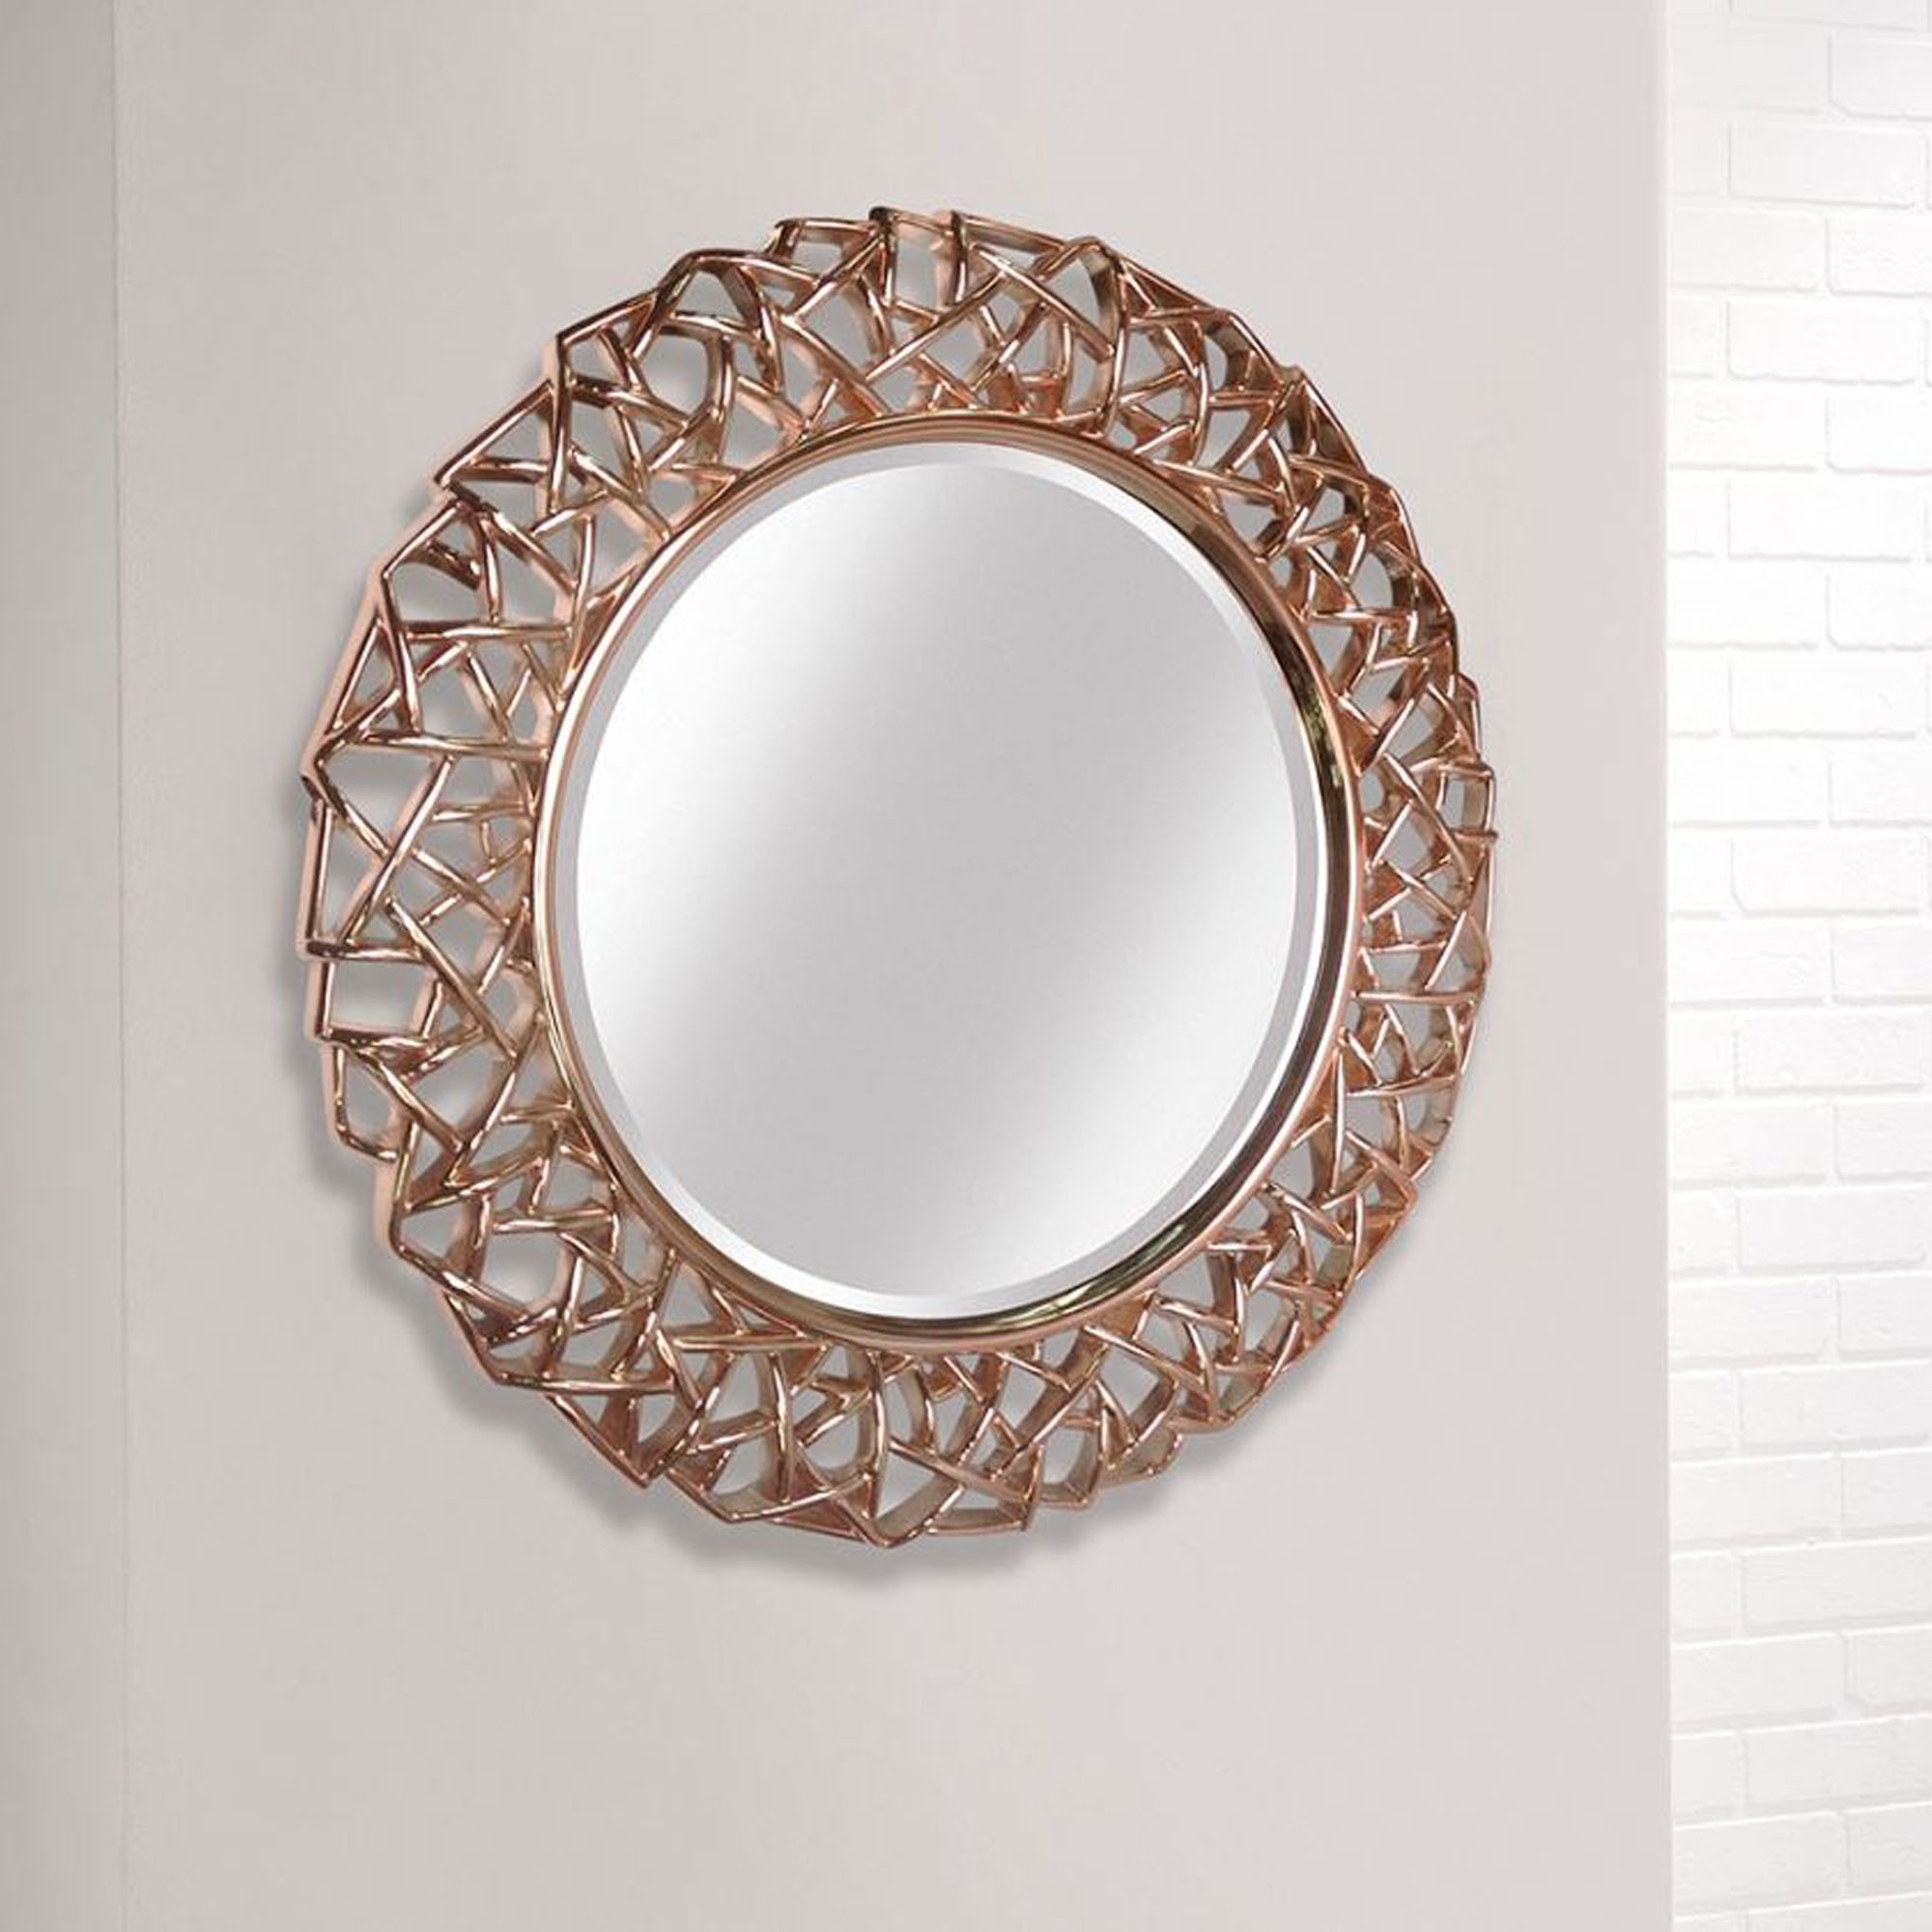 Intricate Rose Gold Round Modern Wall Mirror Throughout Wall Mirrors (Image 11 of 20)